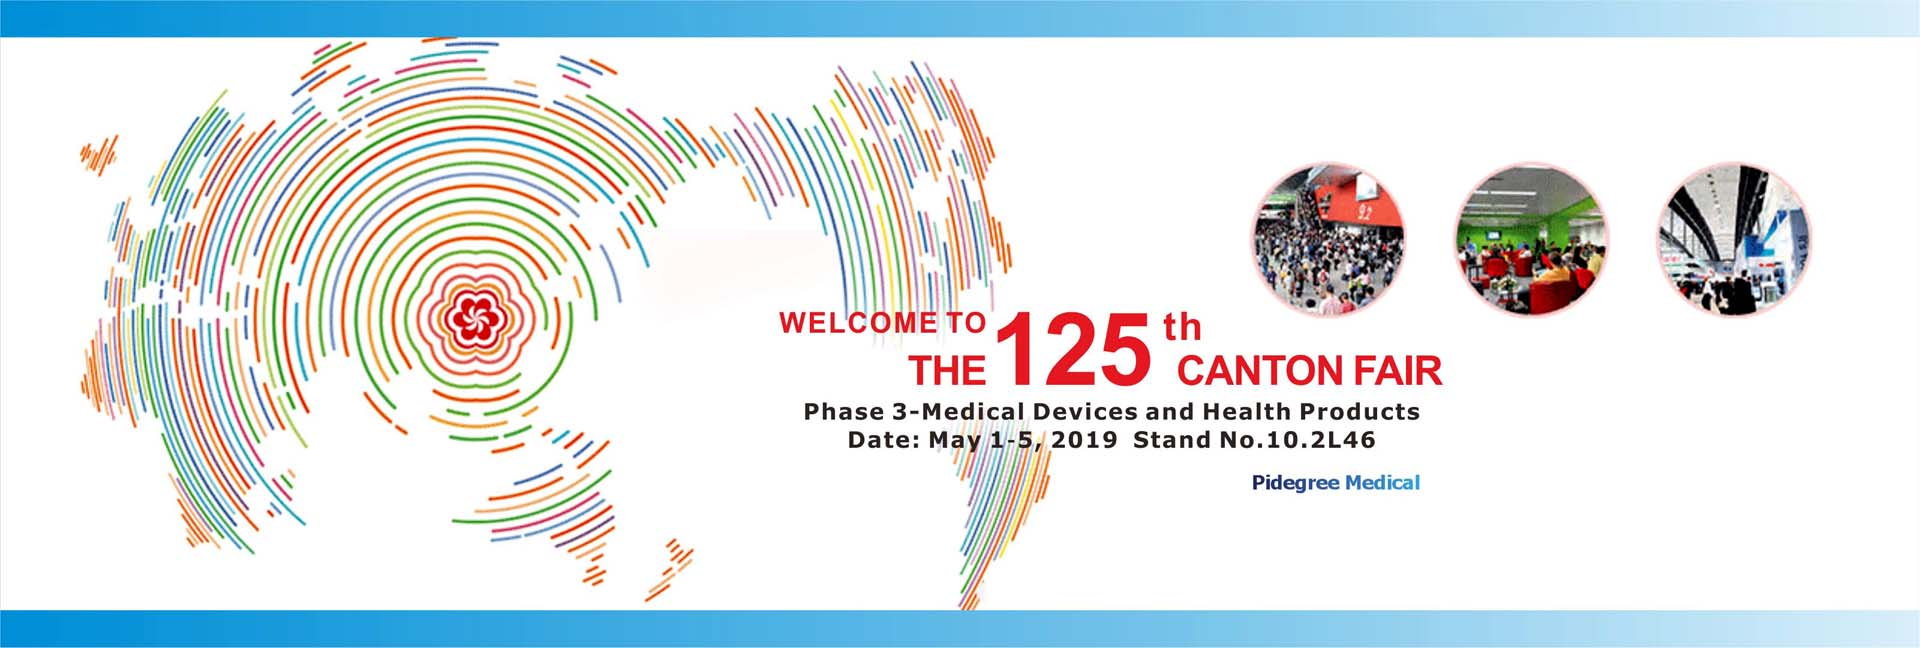 Pidegree Medical invites you to meet at 125th Canton Fair